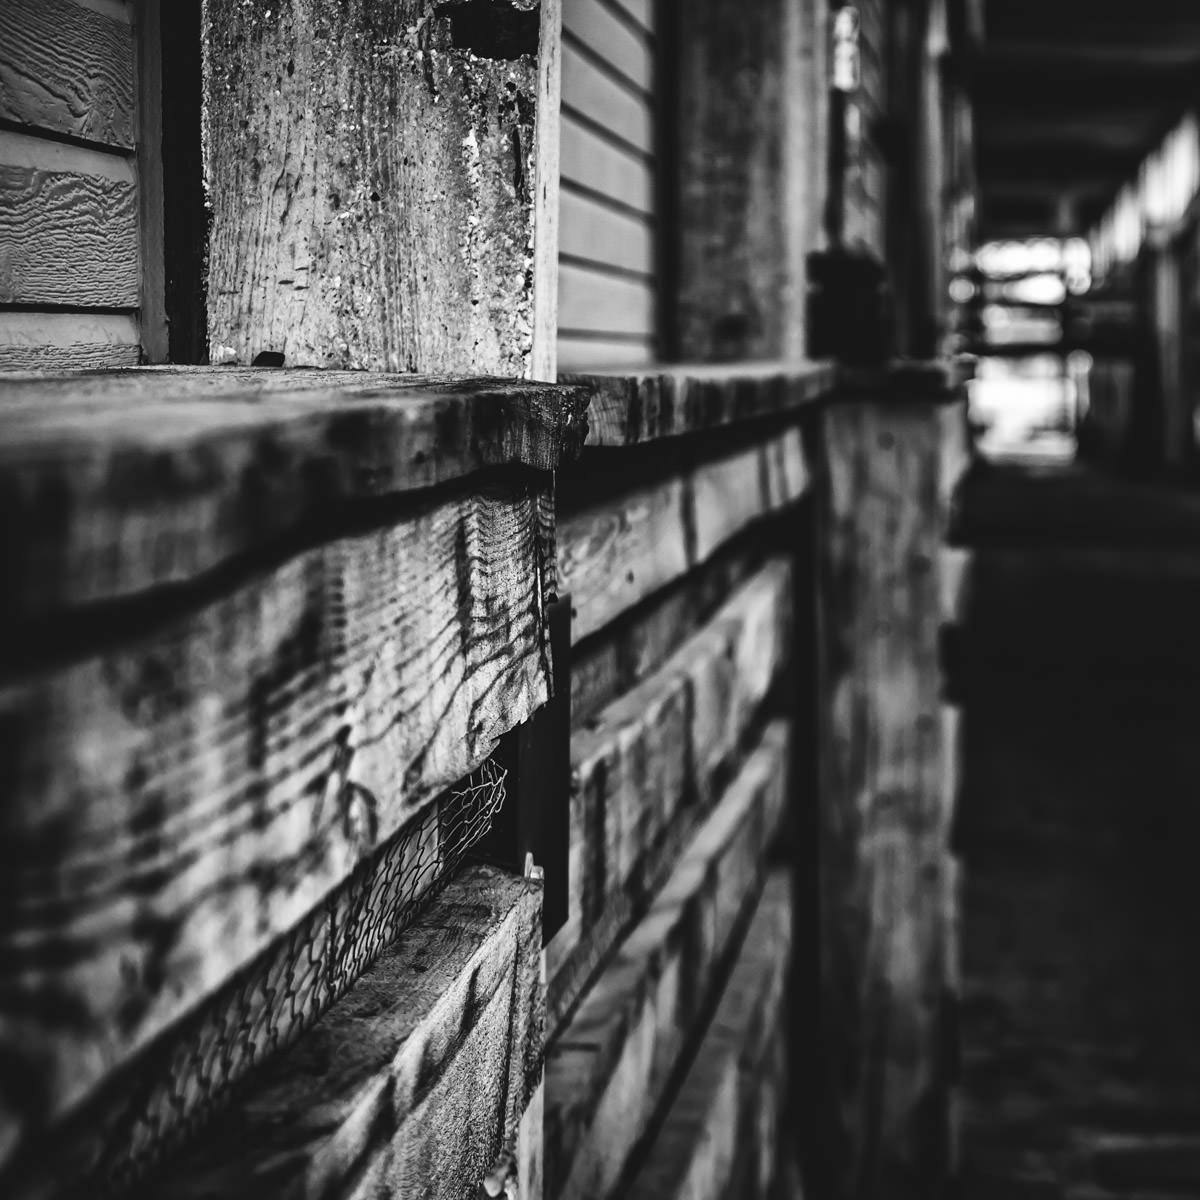 A dark passage at the Fort Worth Stockyards.